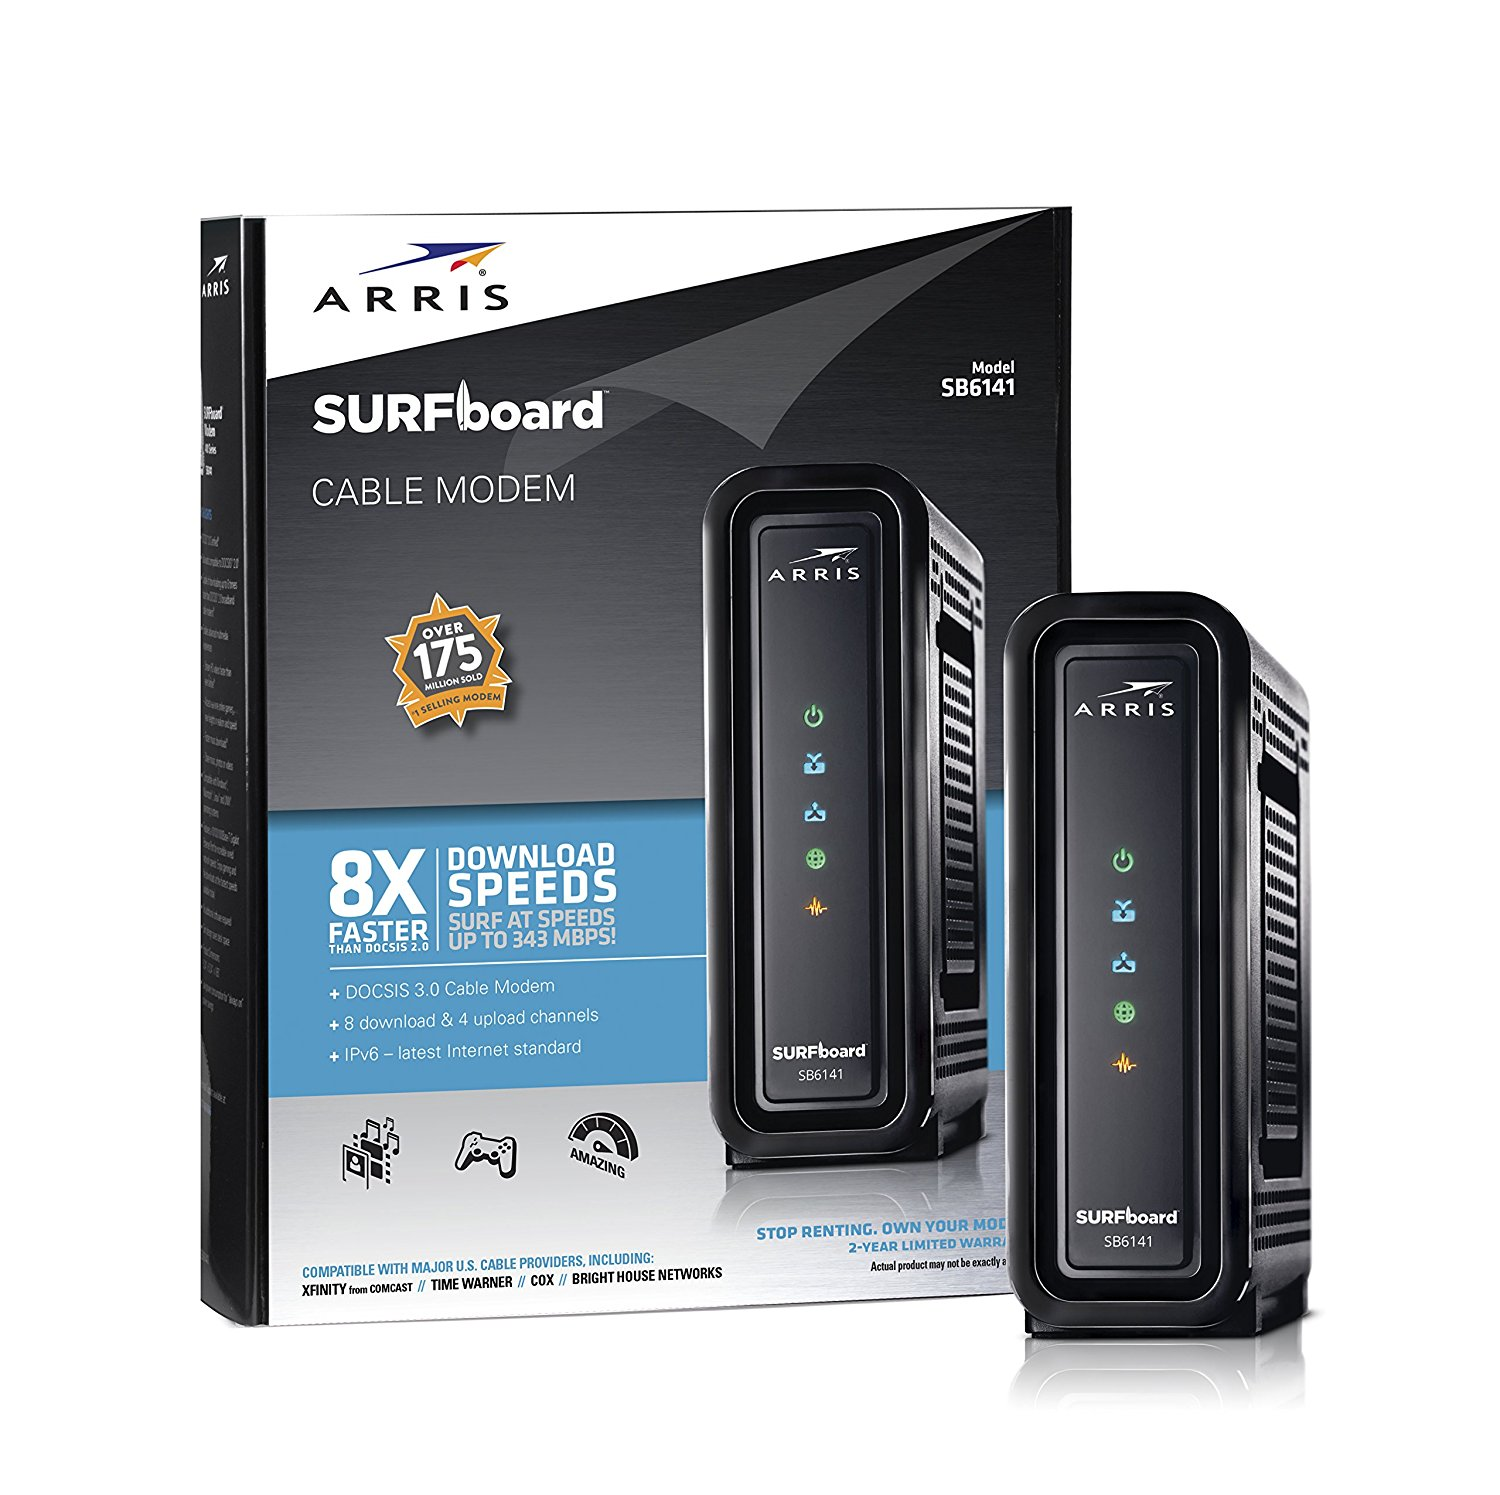 Best Cable Modem Build Home Networks